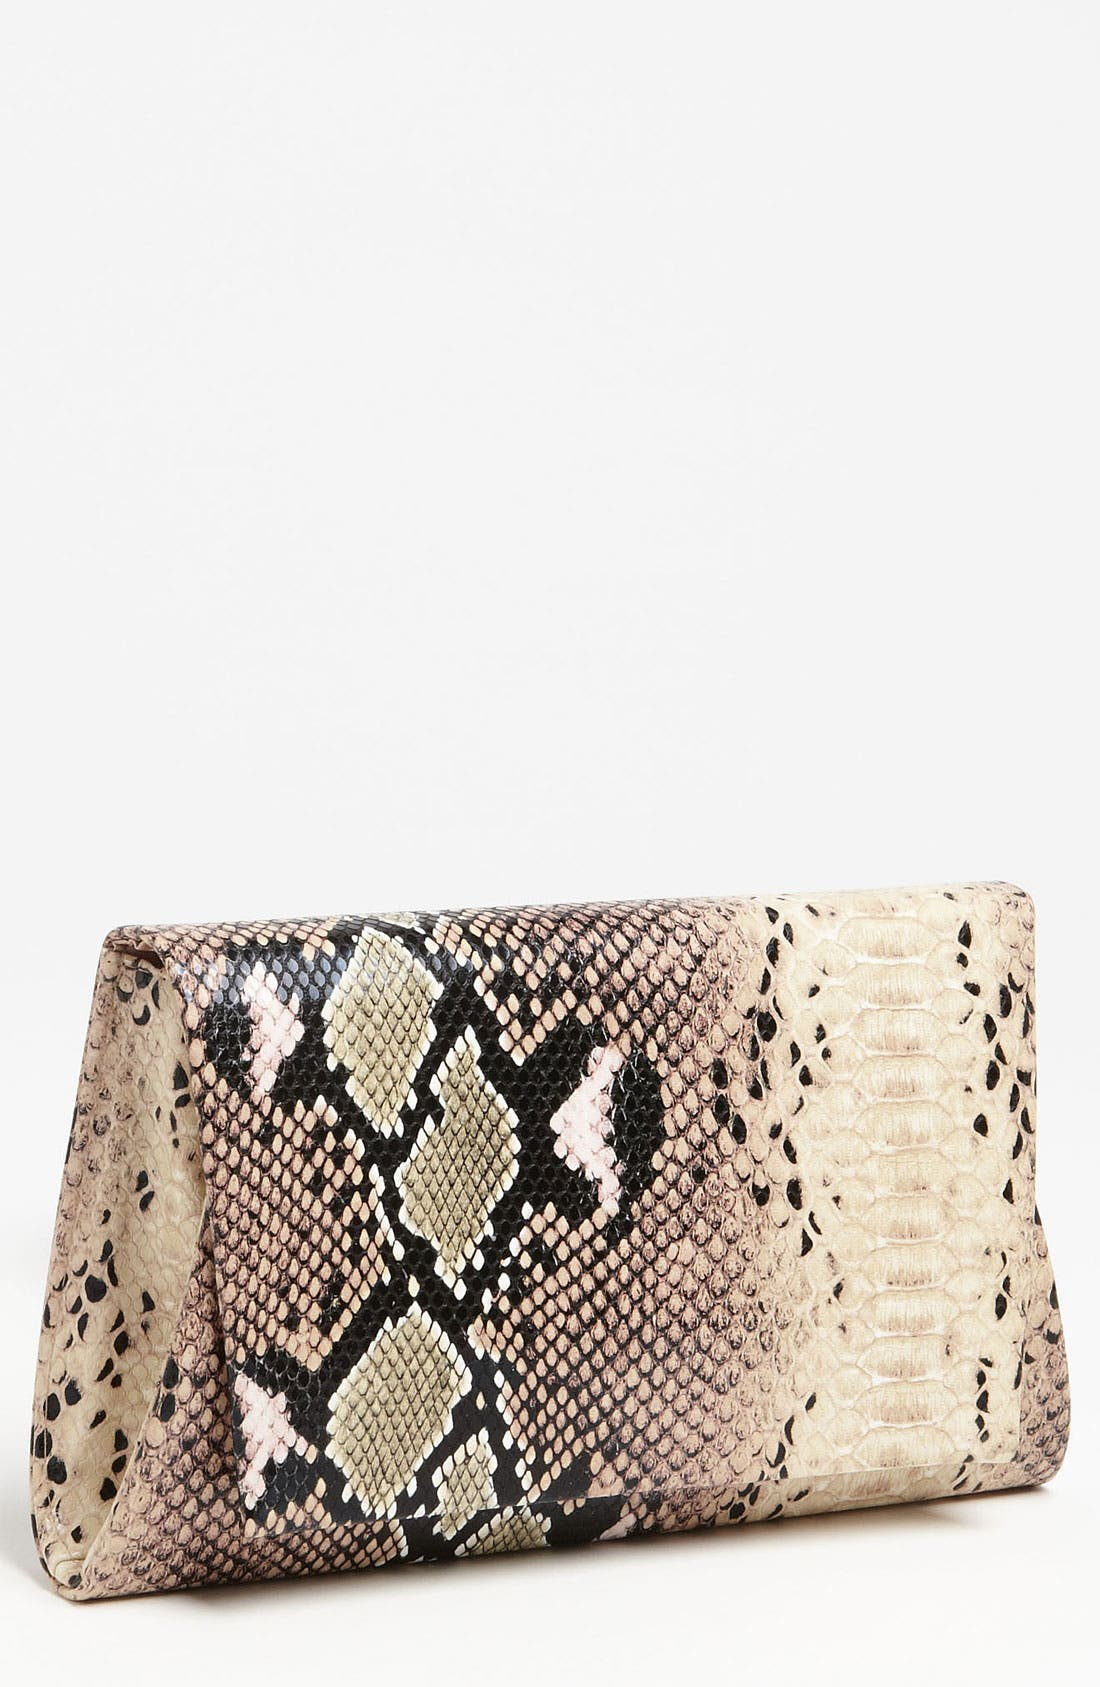 Natasha Couture Foldover Snake Embossed Clutch,                         Main,                         color, 274